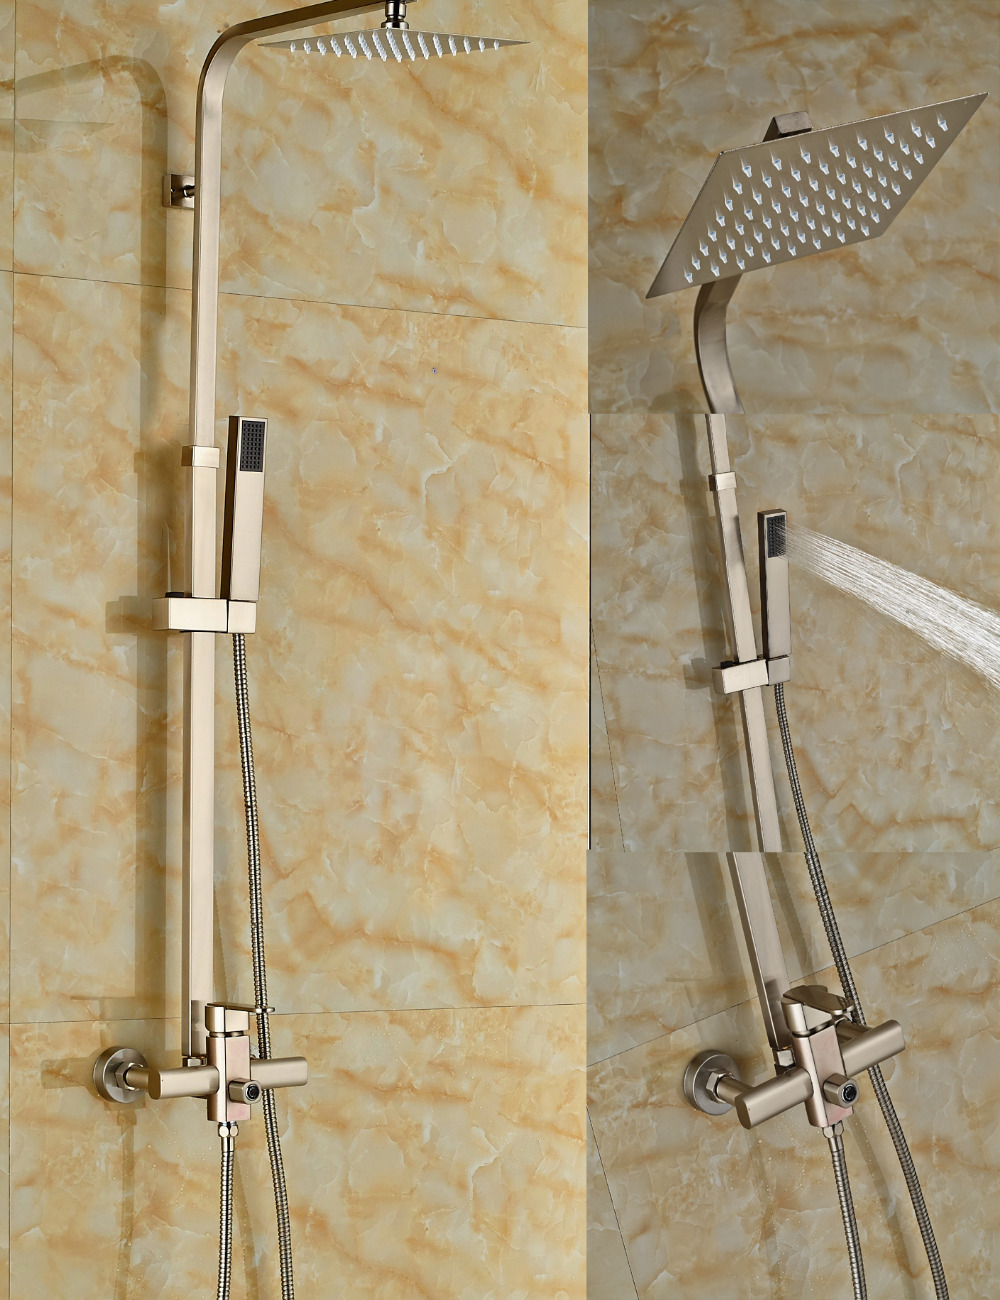 Wholesale And Retail Modern Square Rain Shower Head Single Handle Valve Mixer Tap W/ Hand Shower Sprayer